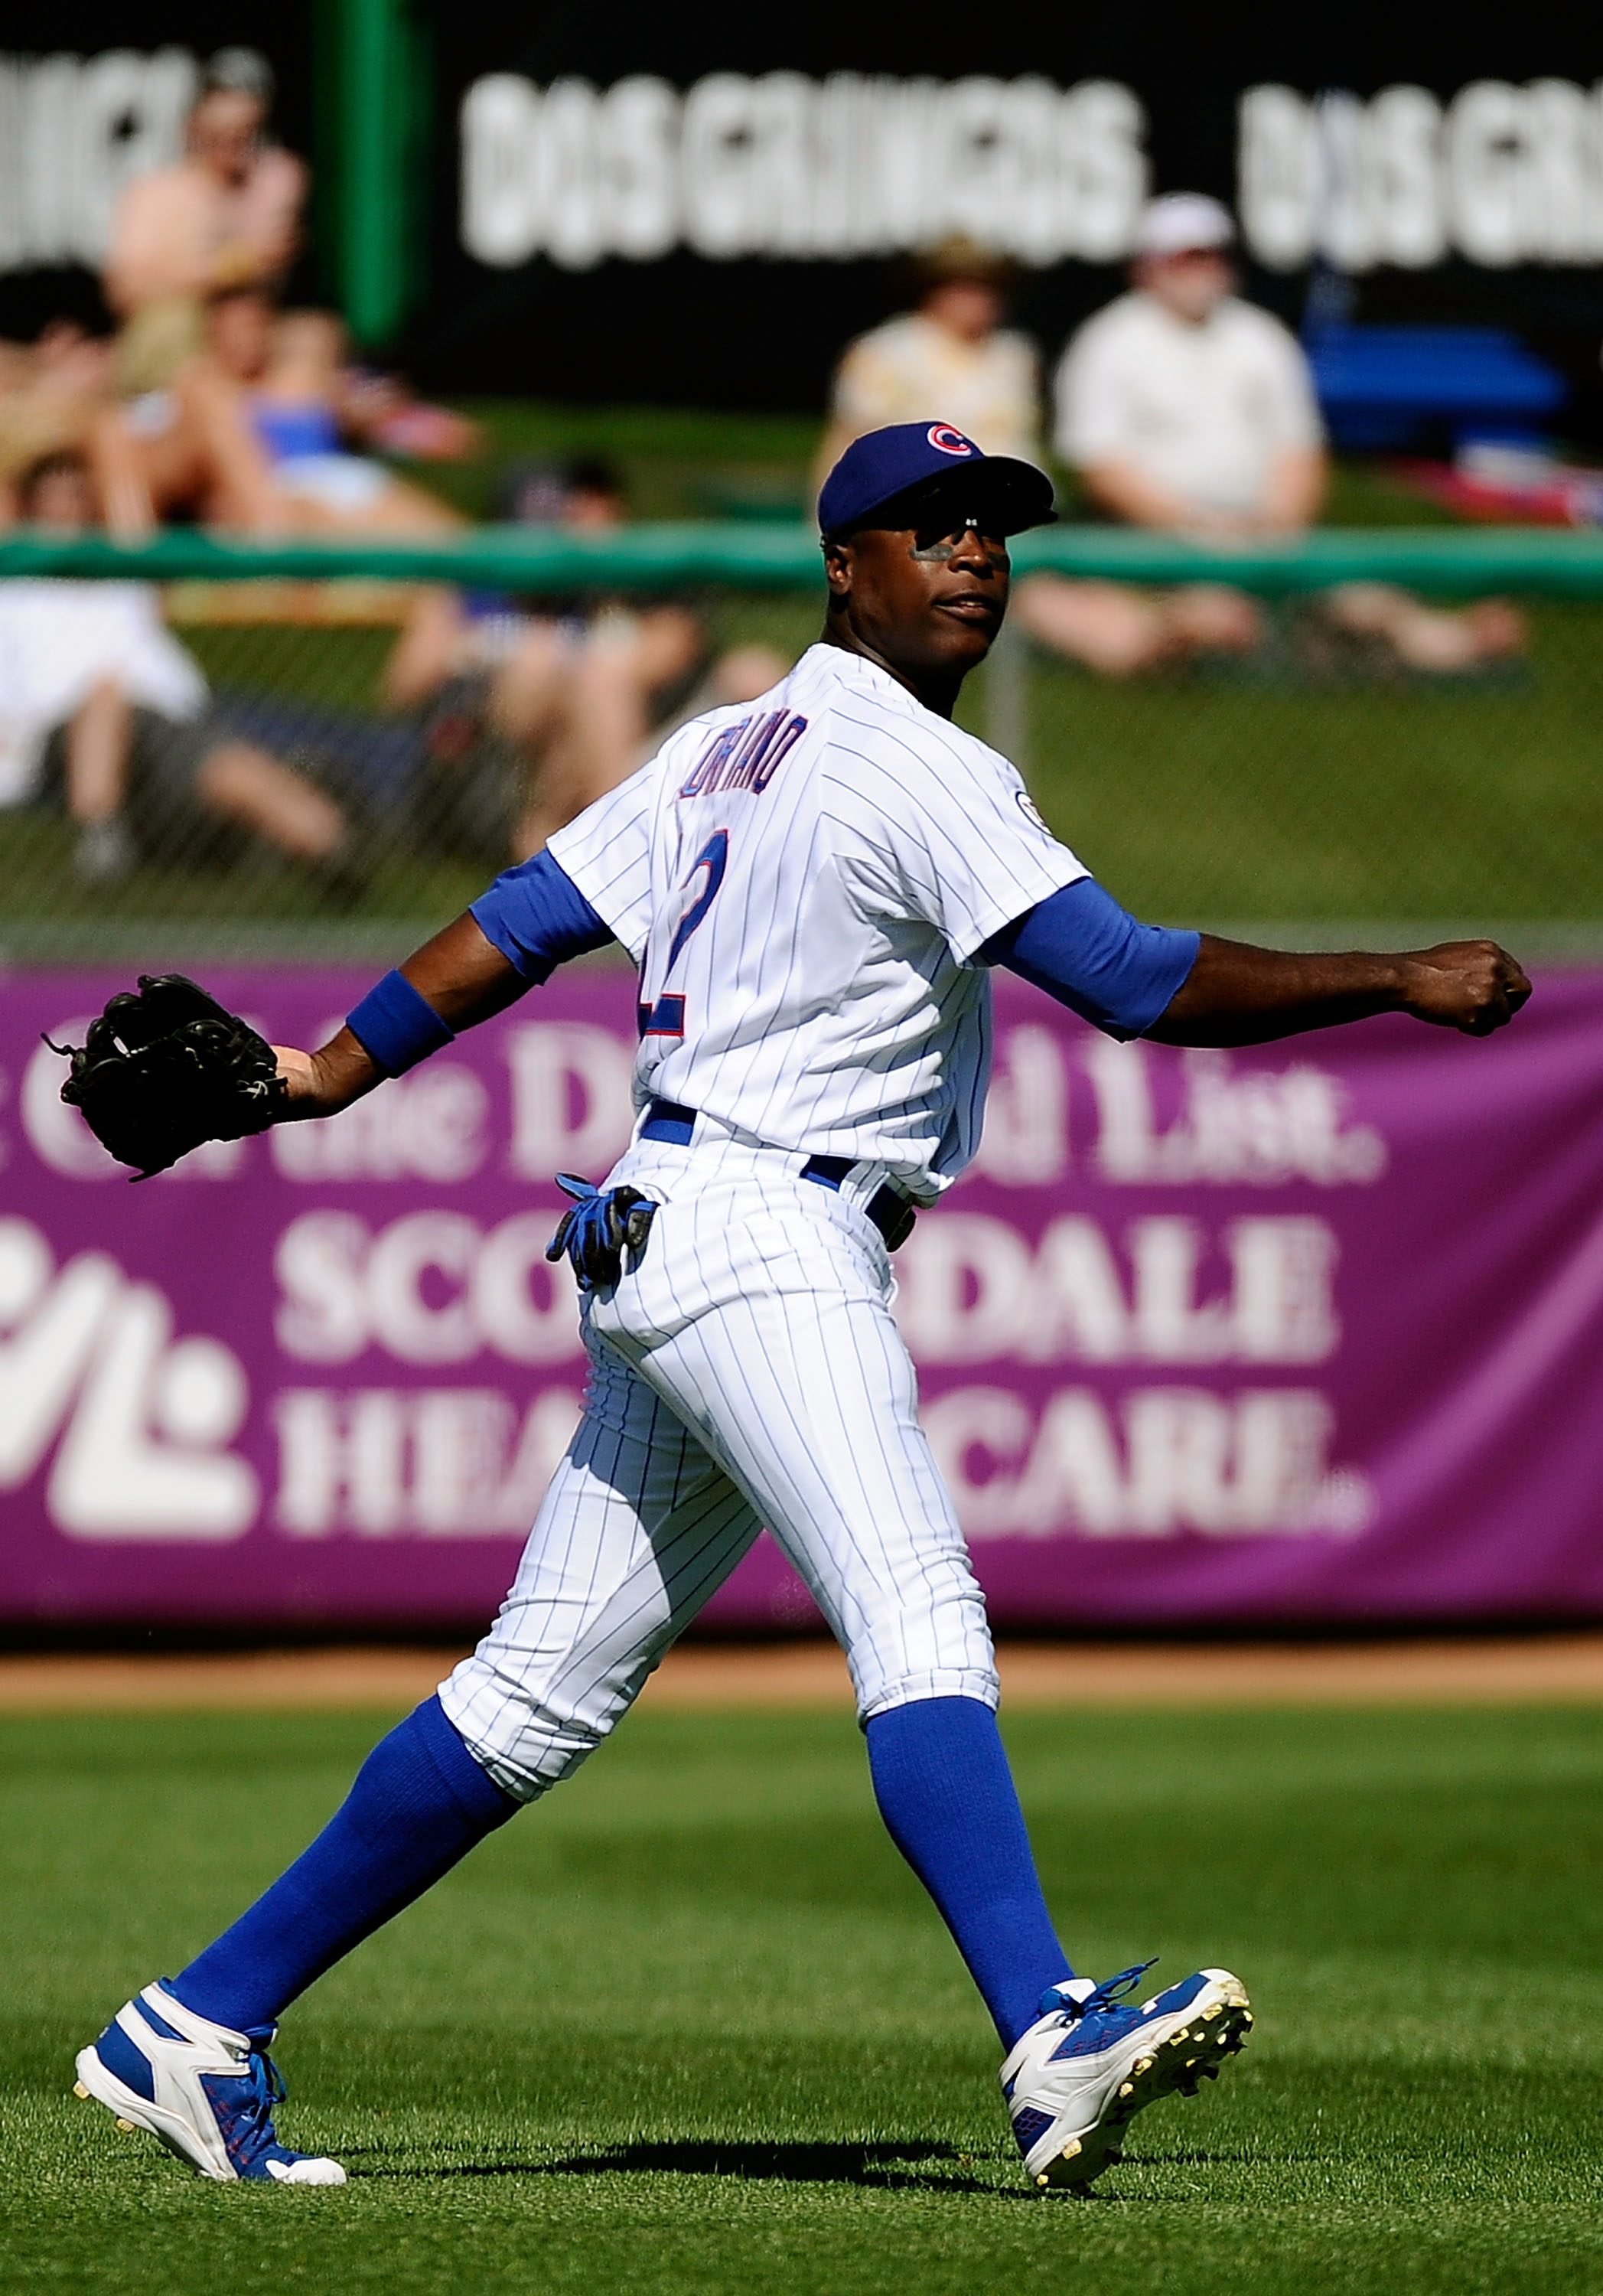 MESA, AZ - MARCH 09:  Alfonso Soriano #12 of the Chicago Cubs plays against the Kansas City Royals during the spring training baseball game at HoHoKam Stadium on March 9, 2011 in Mesa, Arizona.  (Photo by Kevork Djansezian/Getty Images)